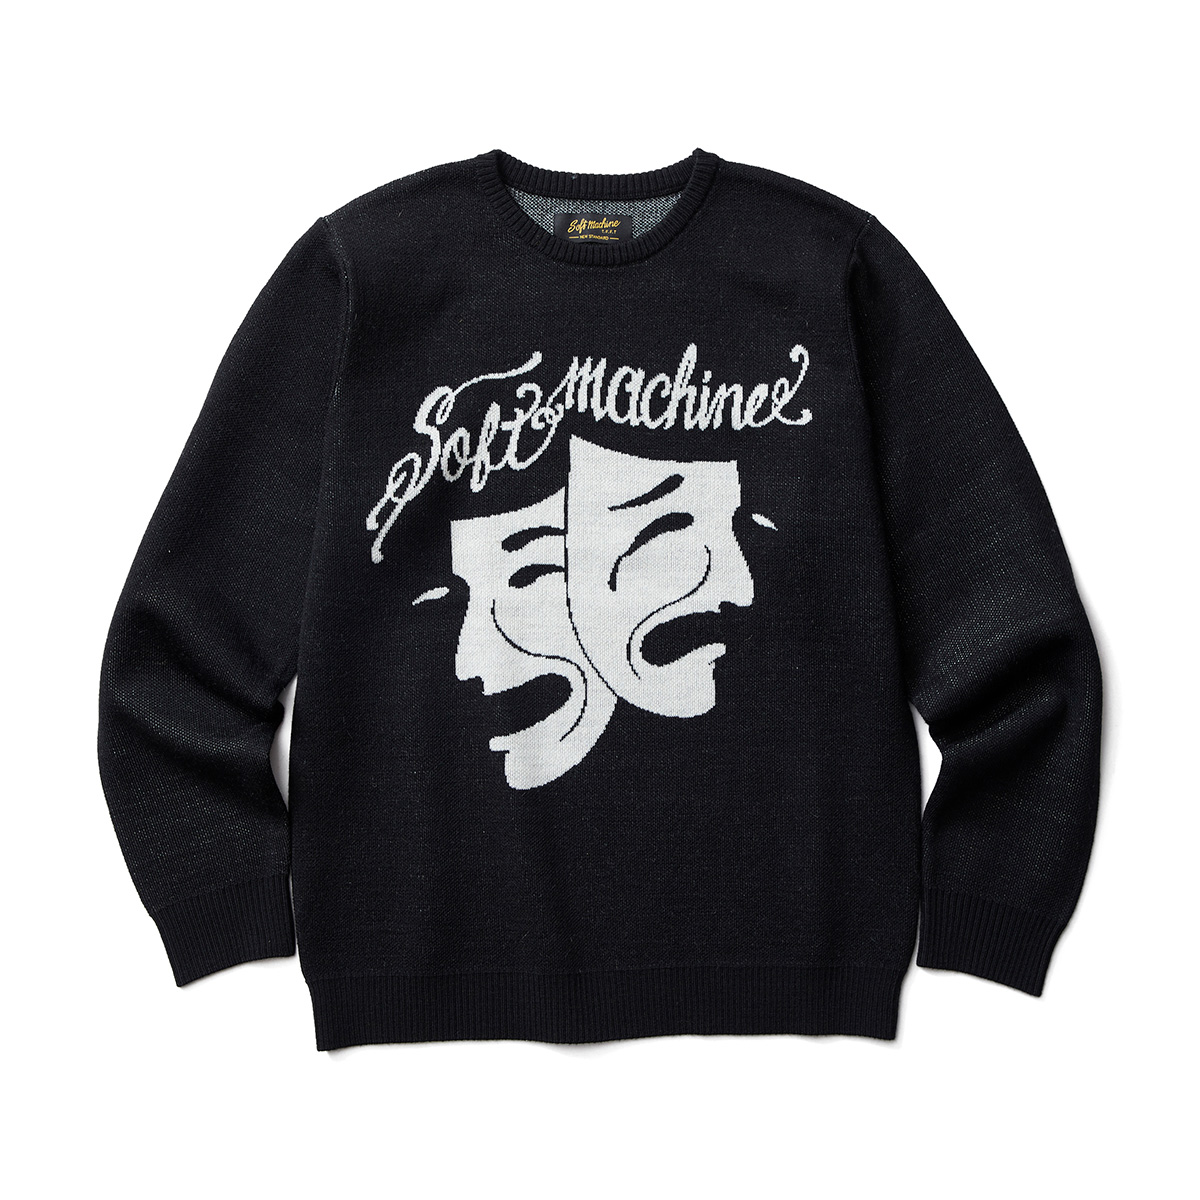 TWO FACE SWEATER